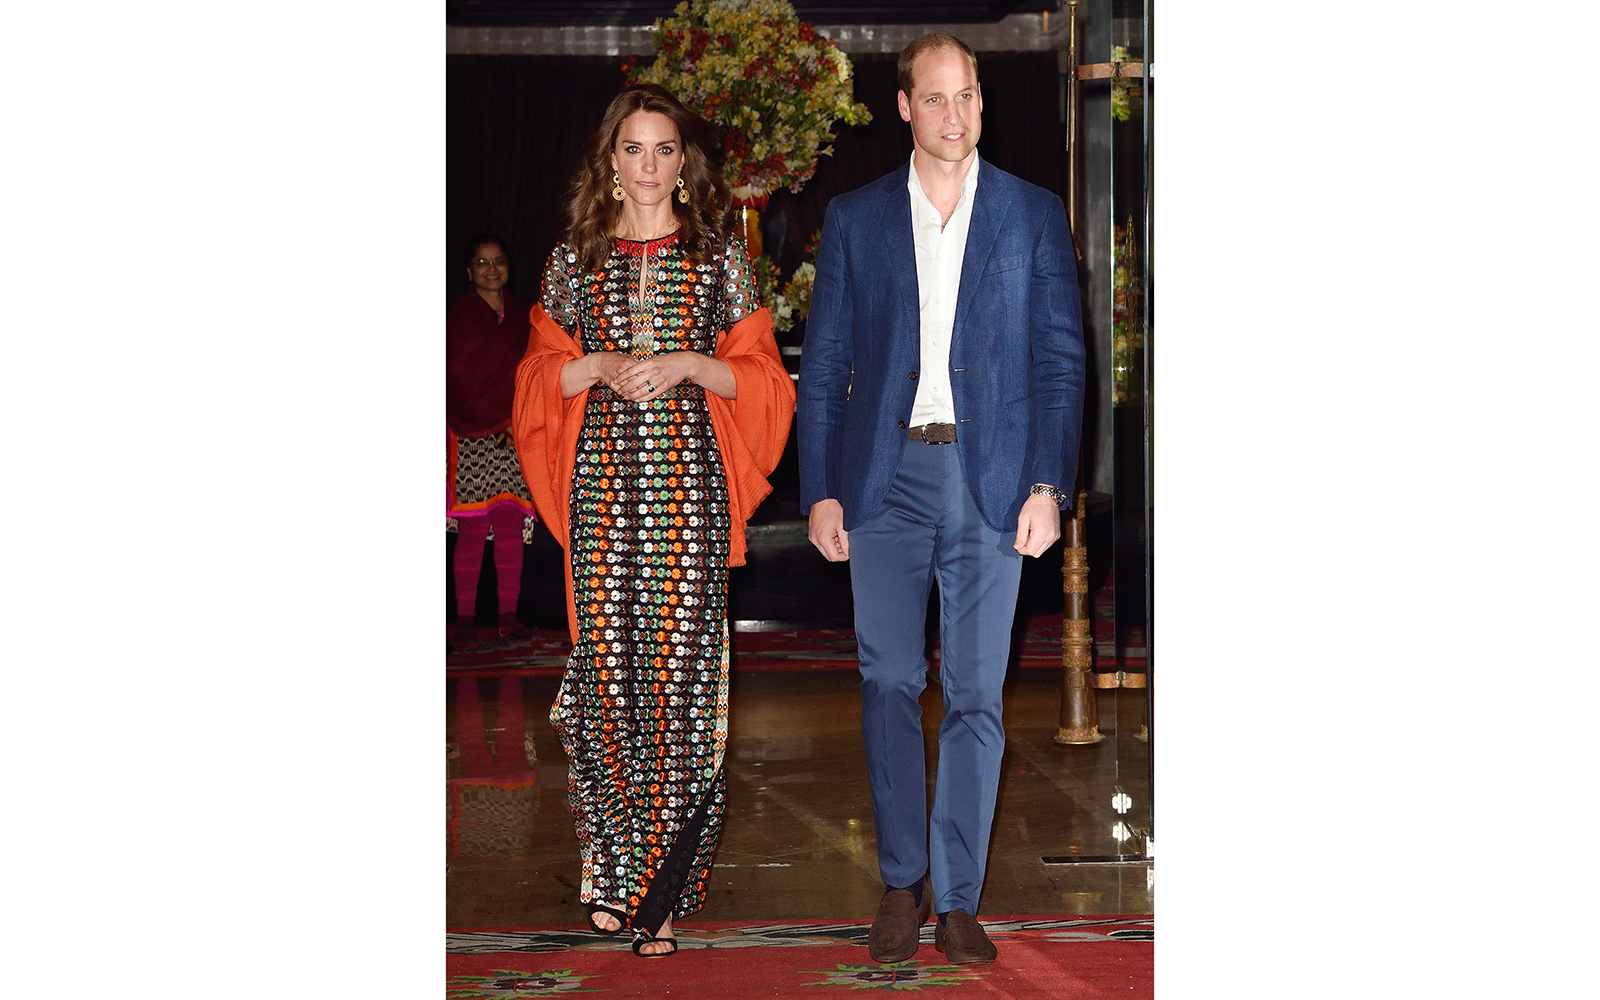 Prince William and Kate Middleton Embark on their Royal Tour of India and Bhutan: Attending a Royal Ball